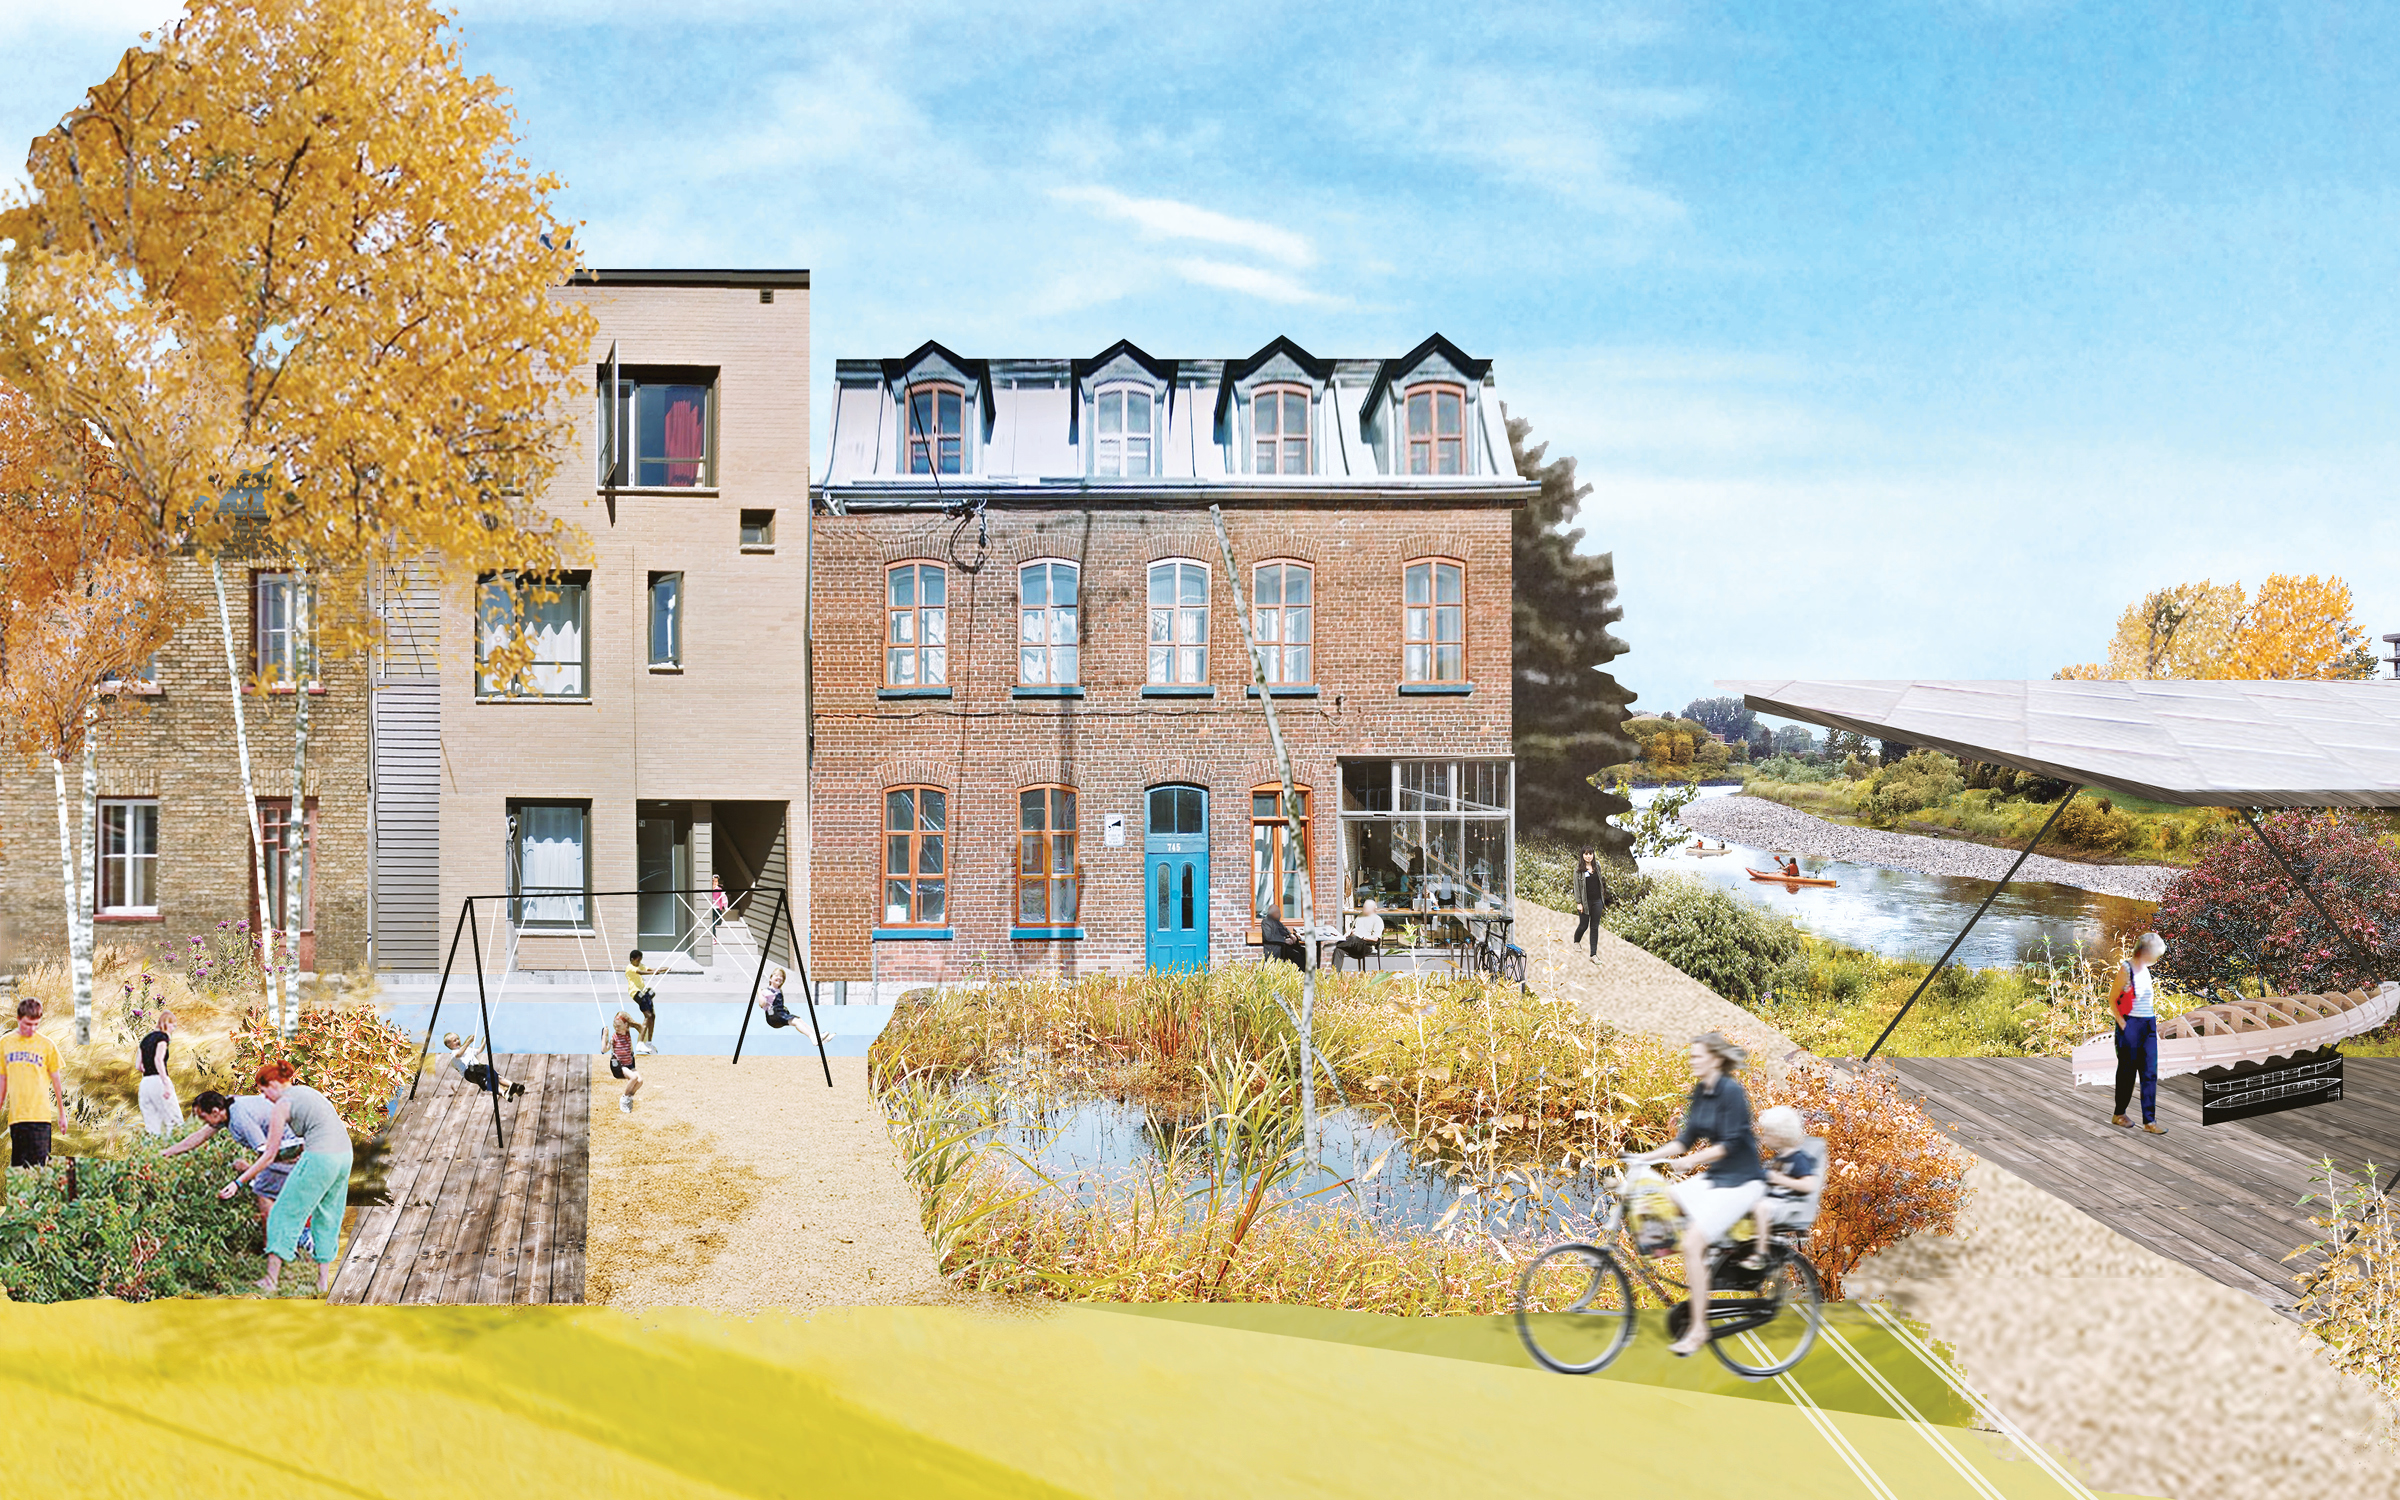 Cadaster | Headwater Lot: Adaptive Reuse Plan of Quebec City's Rights-of-Way, Quebec City, Canada, 2017. By Cadaster